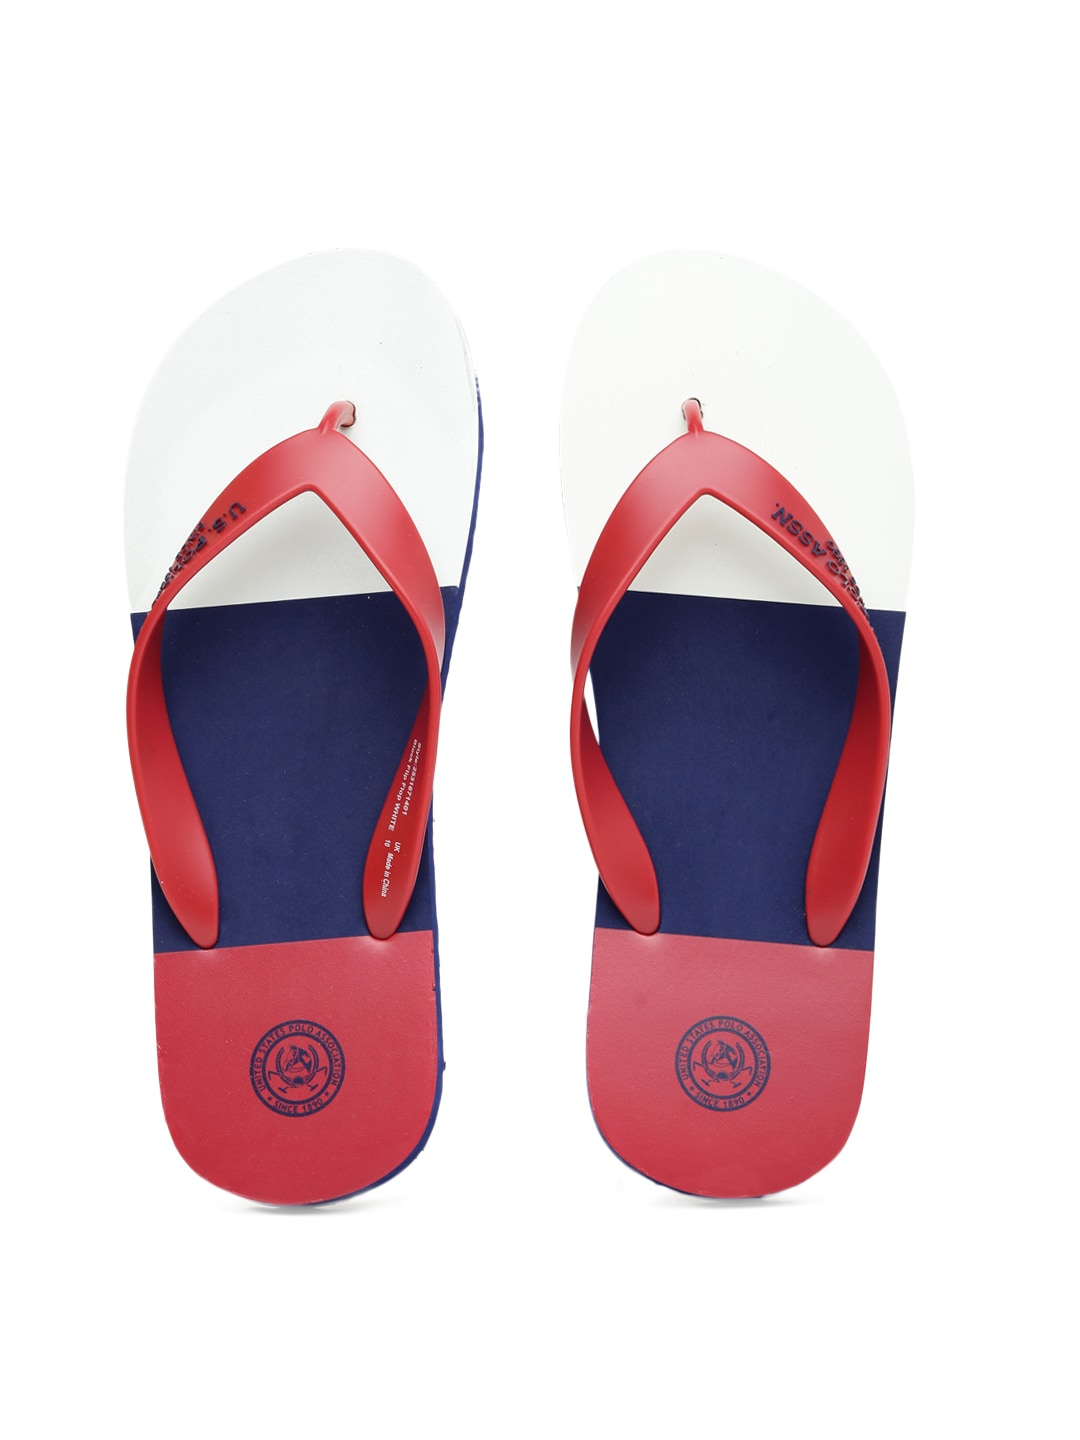 0510bcc66a2bf9 Us polo assn 2531671401 U S Polo Assn Men Red And White Flip Flops- Price  in India